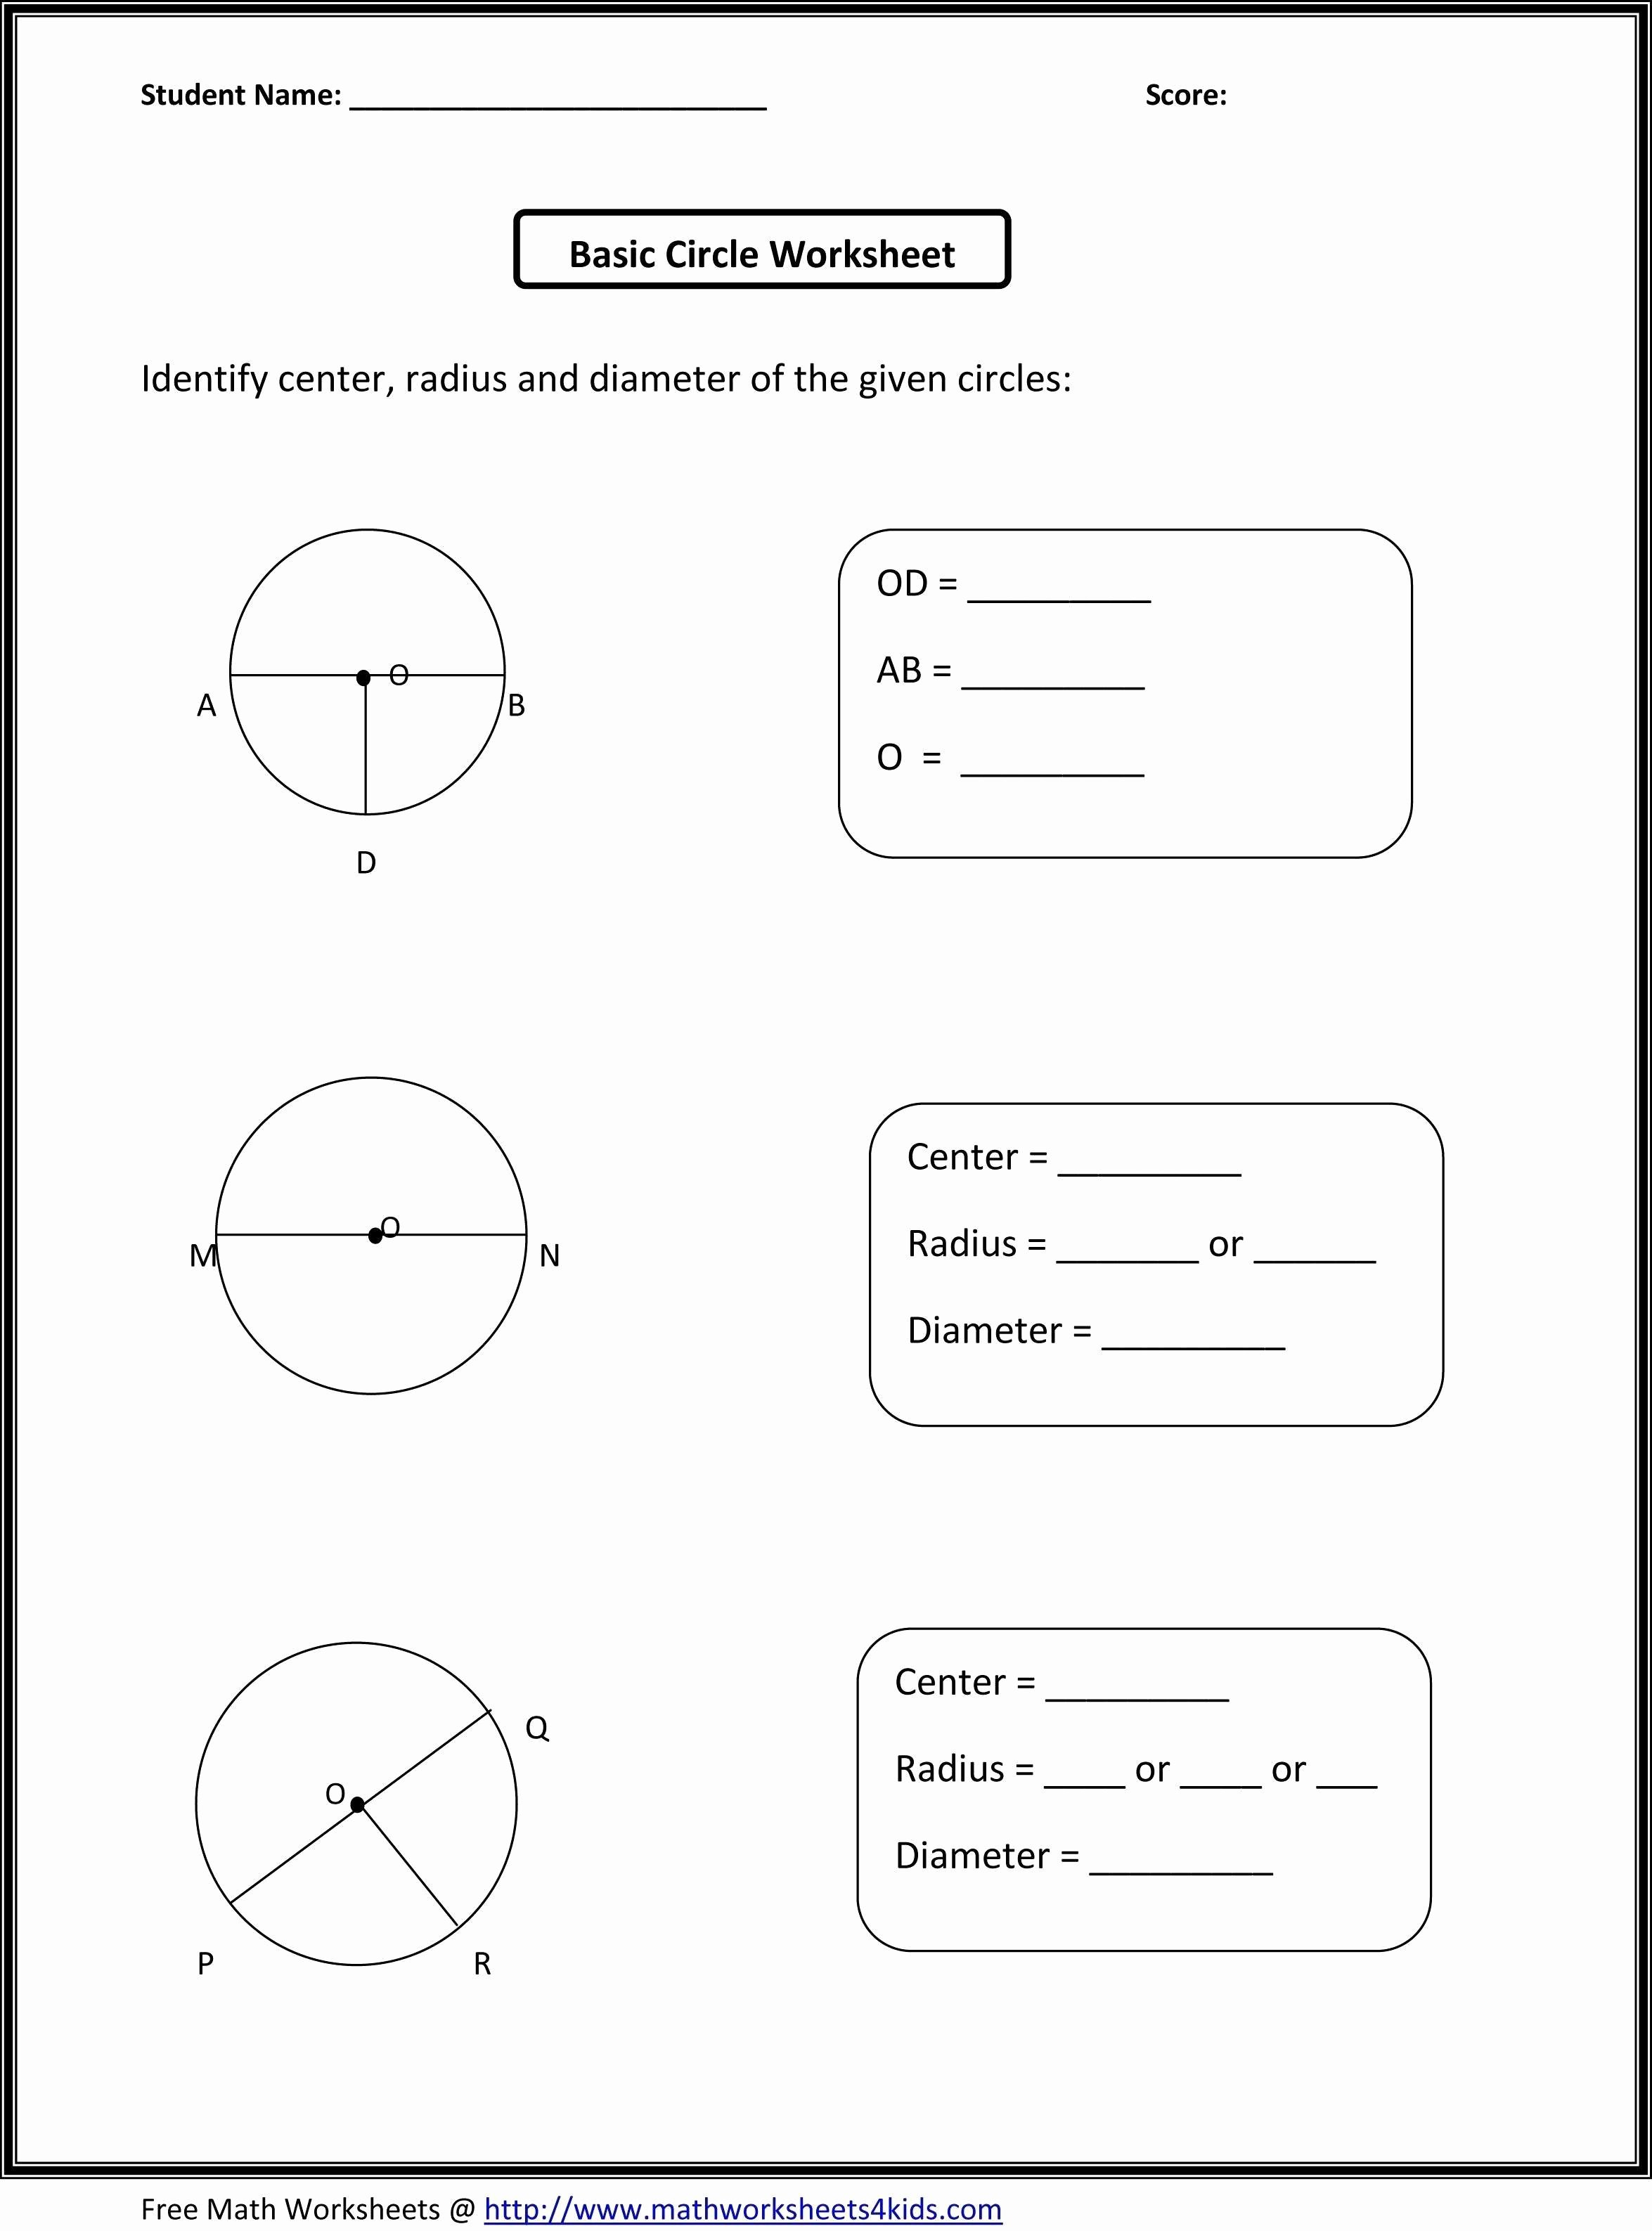 Inequality Word Problems Worksheet New Linear Inequalities Worksheet Worksheet Idea Template